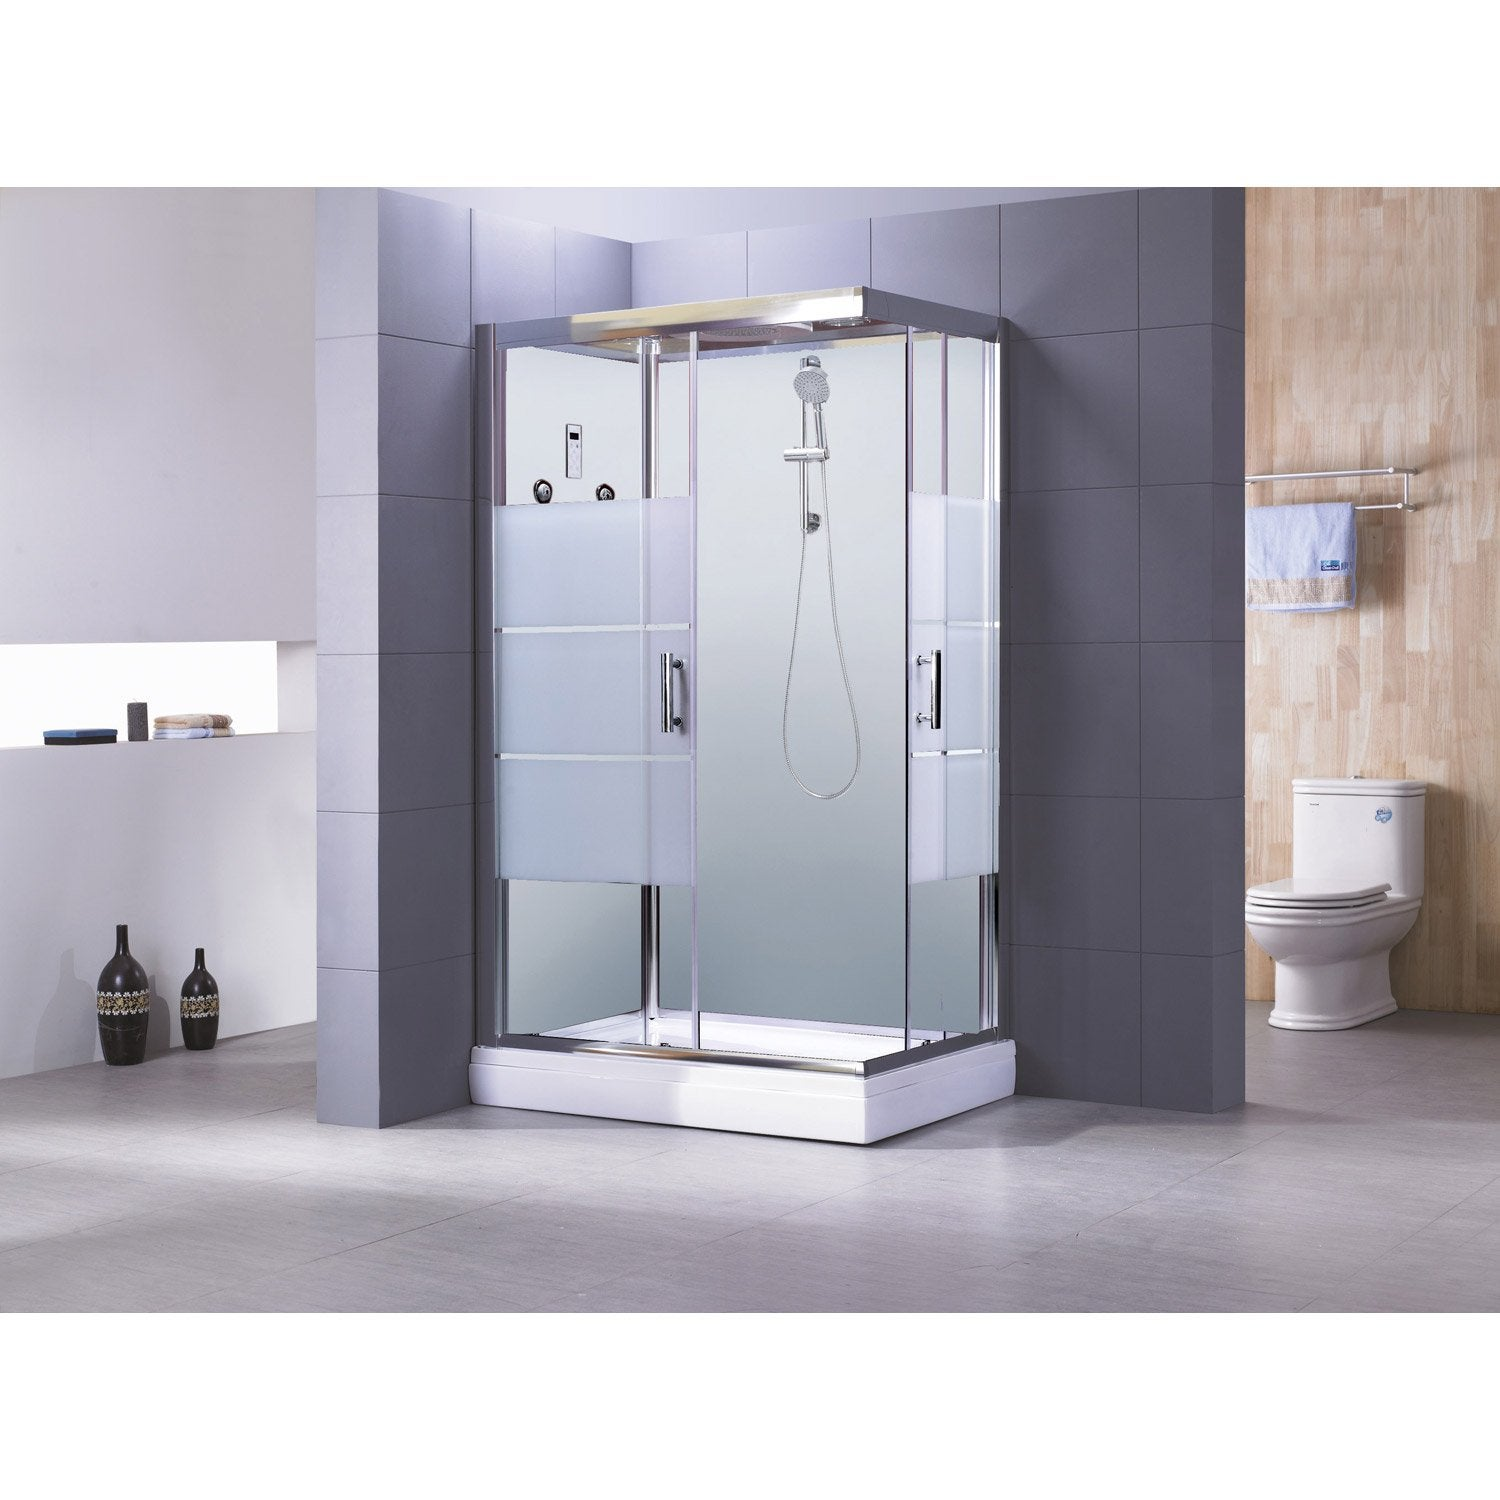 cabine de douche optima2 blanche hydromassante mitigeur rectangulaire 120x80 cm leroy merlin. Black Bedroom Furniture Sets. Home Design Ideas